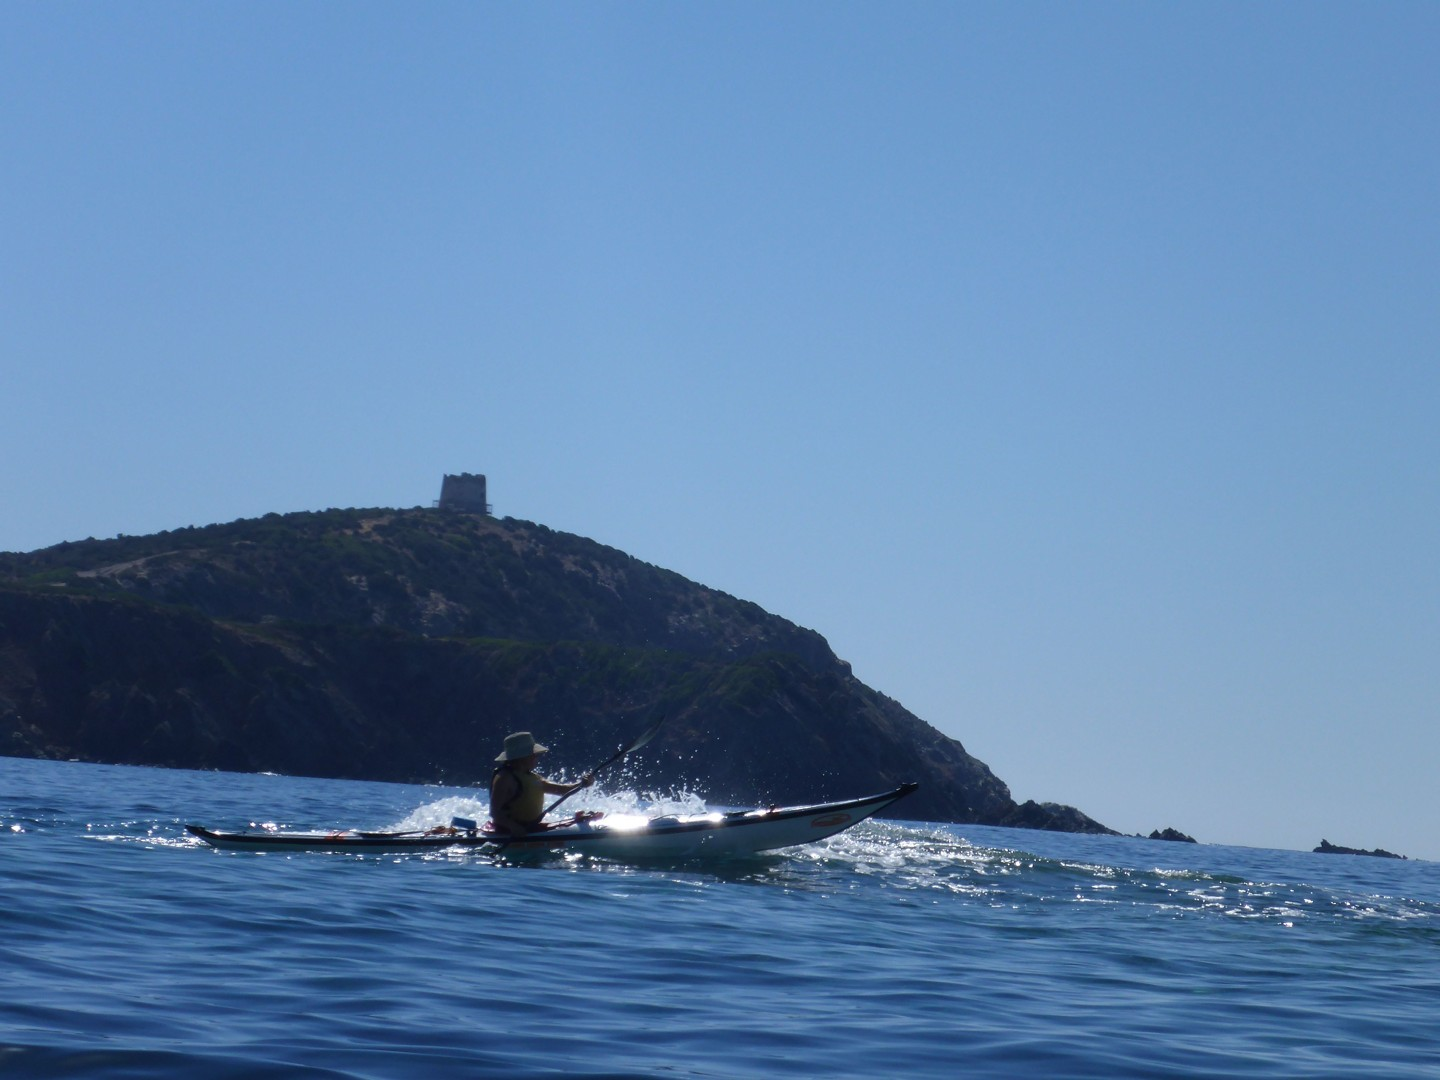 Torre.jpg - Sardinia - Southern Sea Kayaking - Kayaking